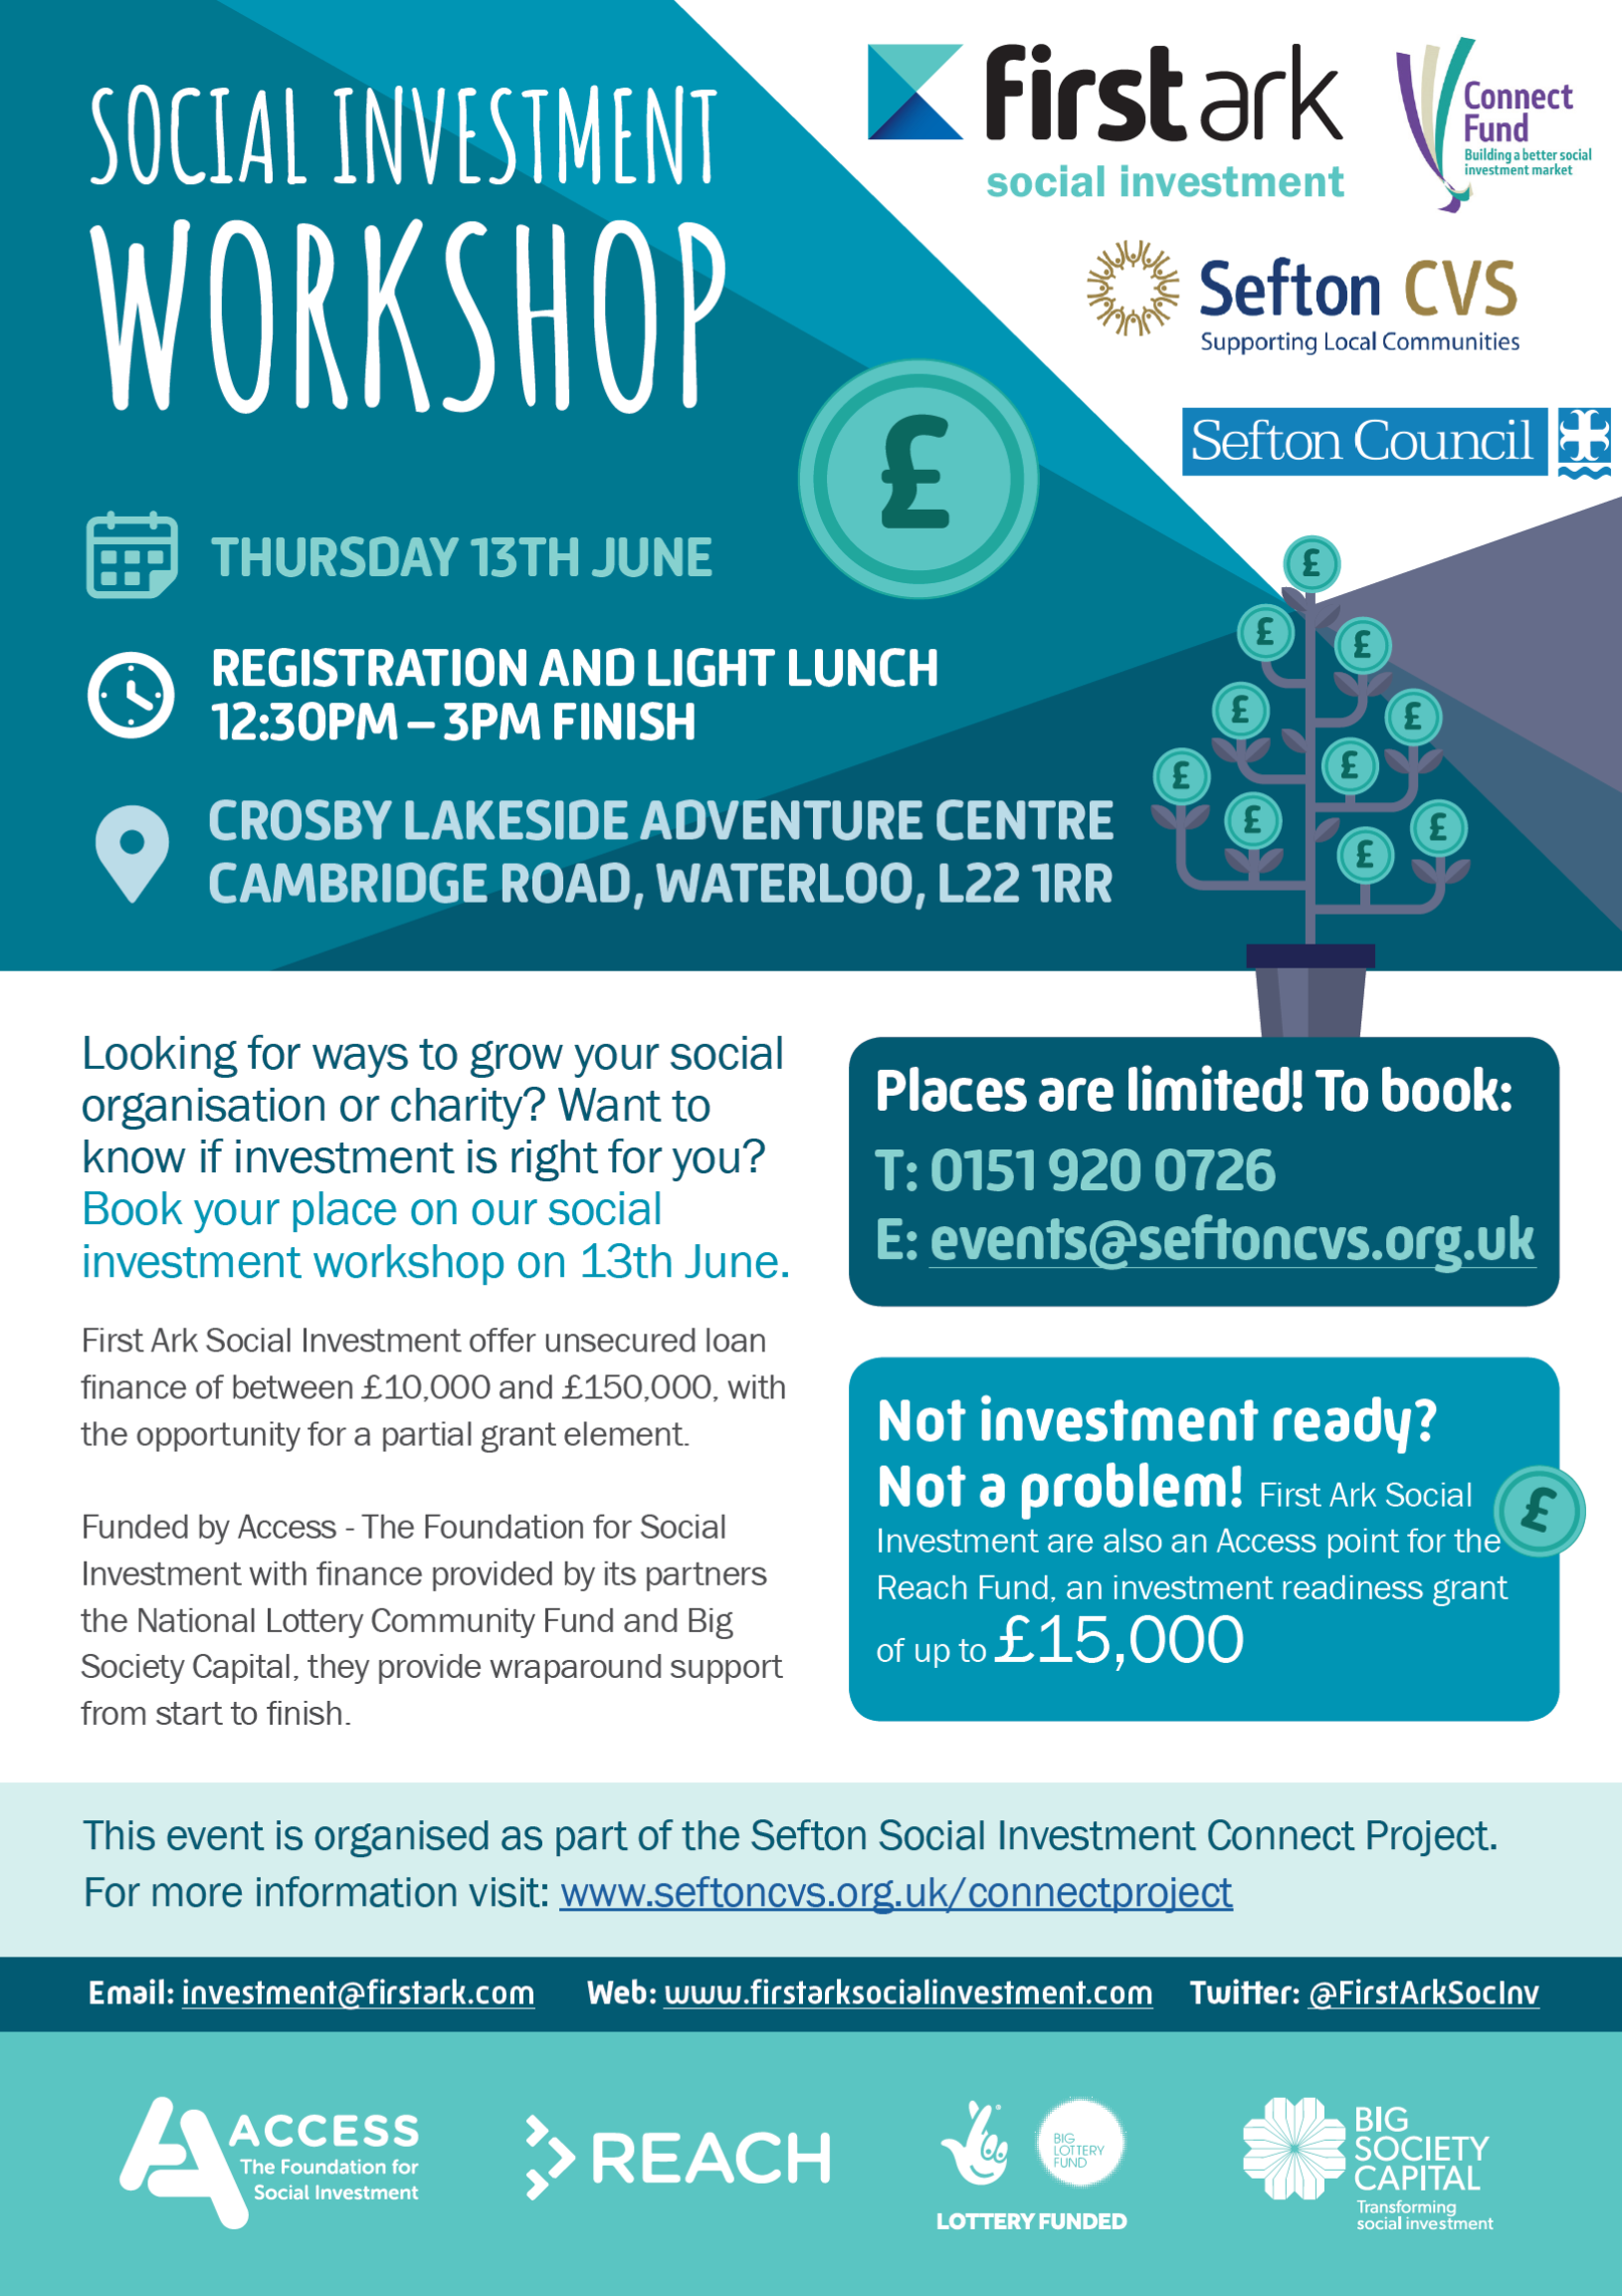 Sefton Social Investment Connect Project – Sefton Council